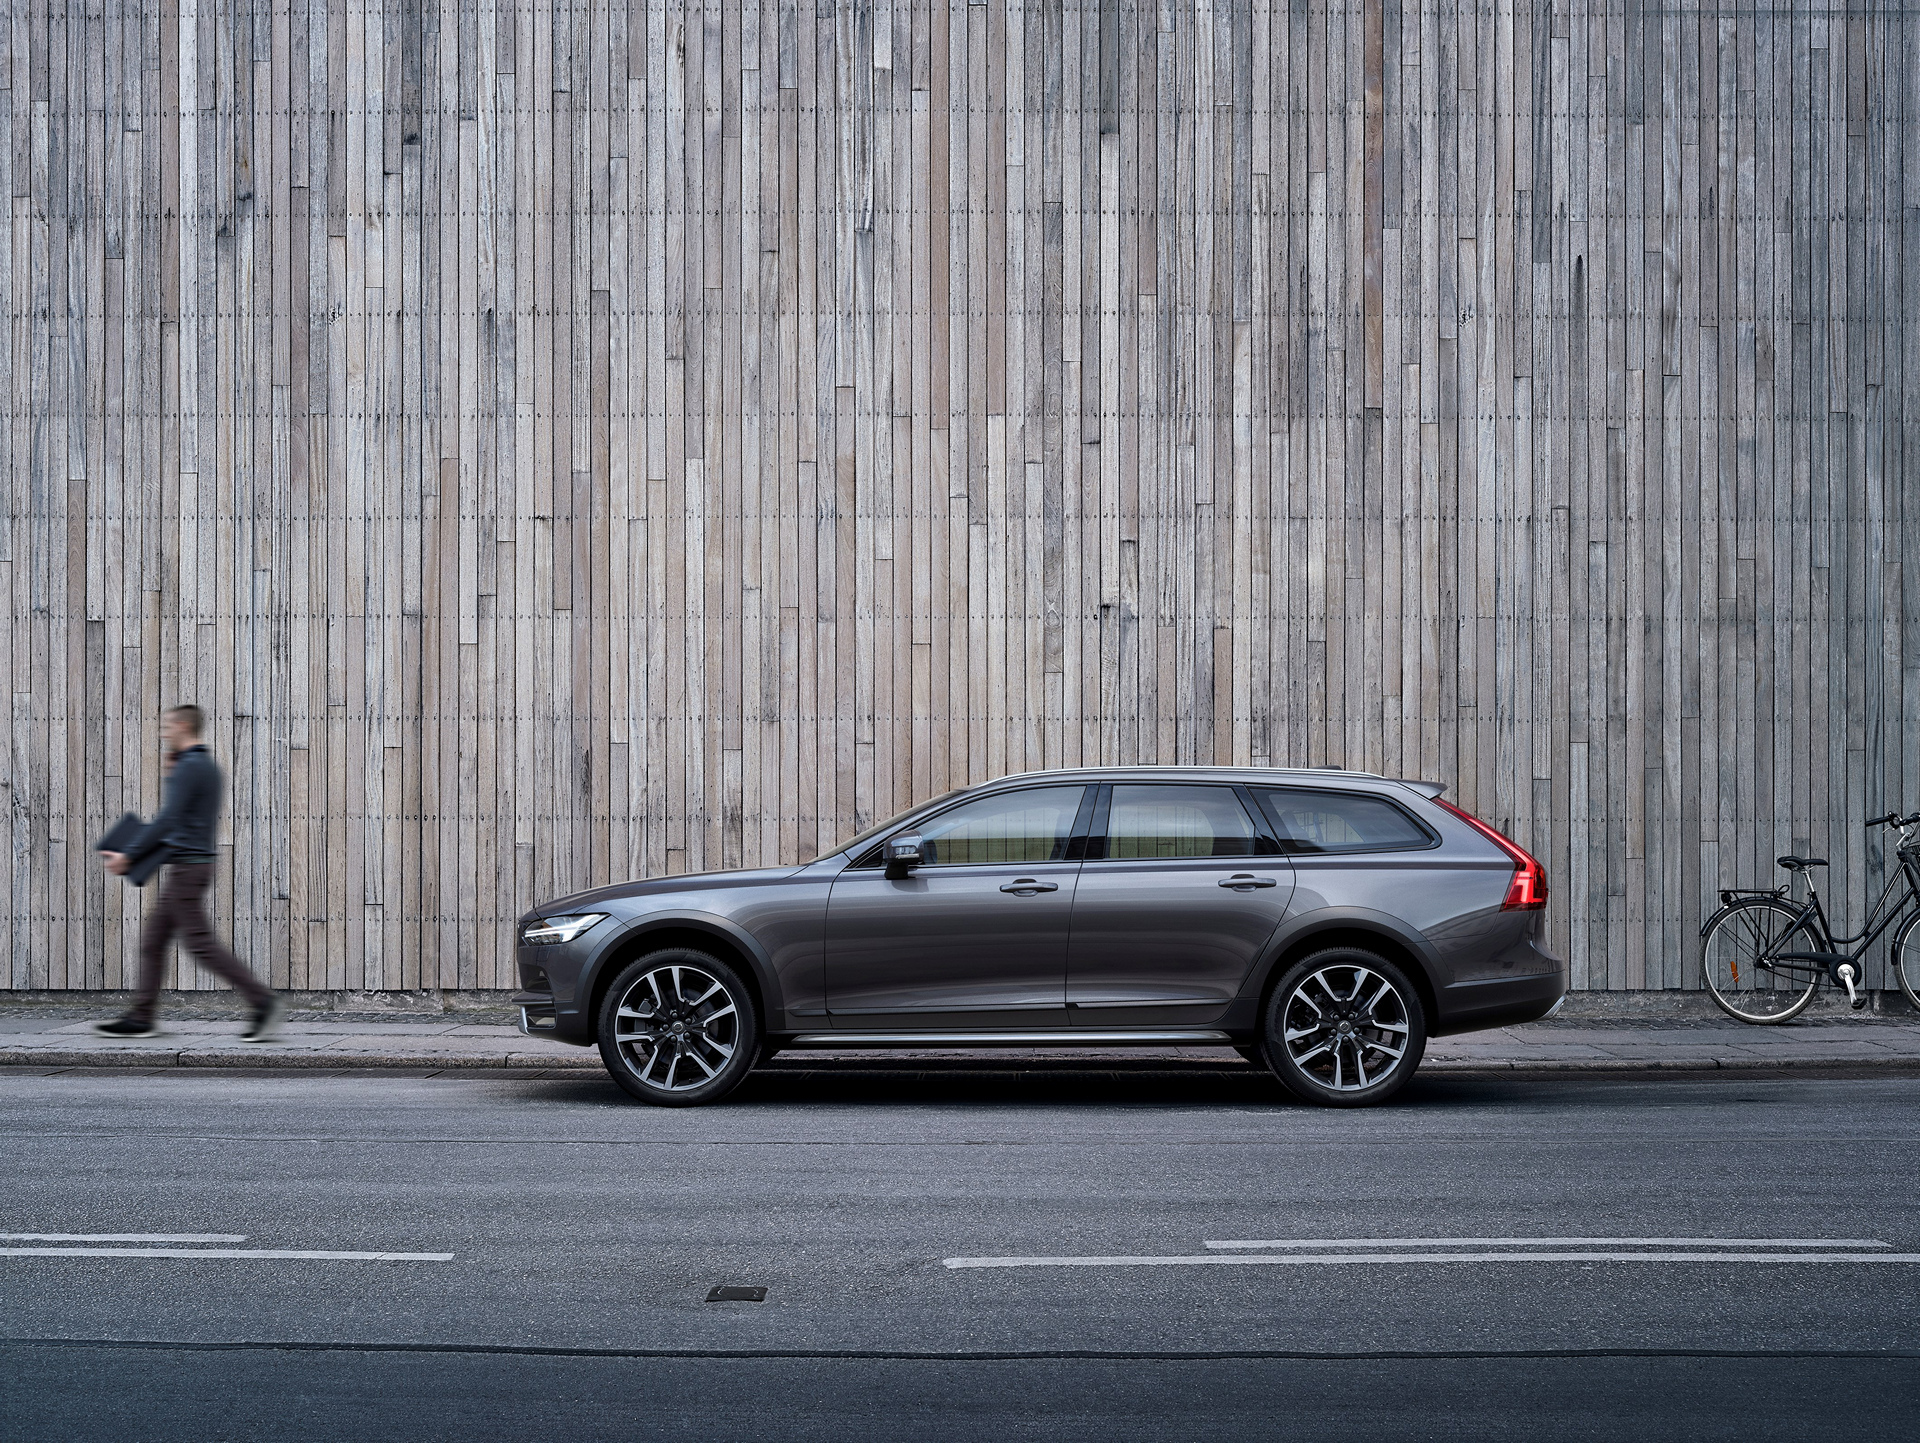 Volvo V90 Cross Country © Zhejiang Geely Holding Group Co., Ltd